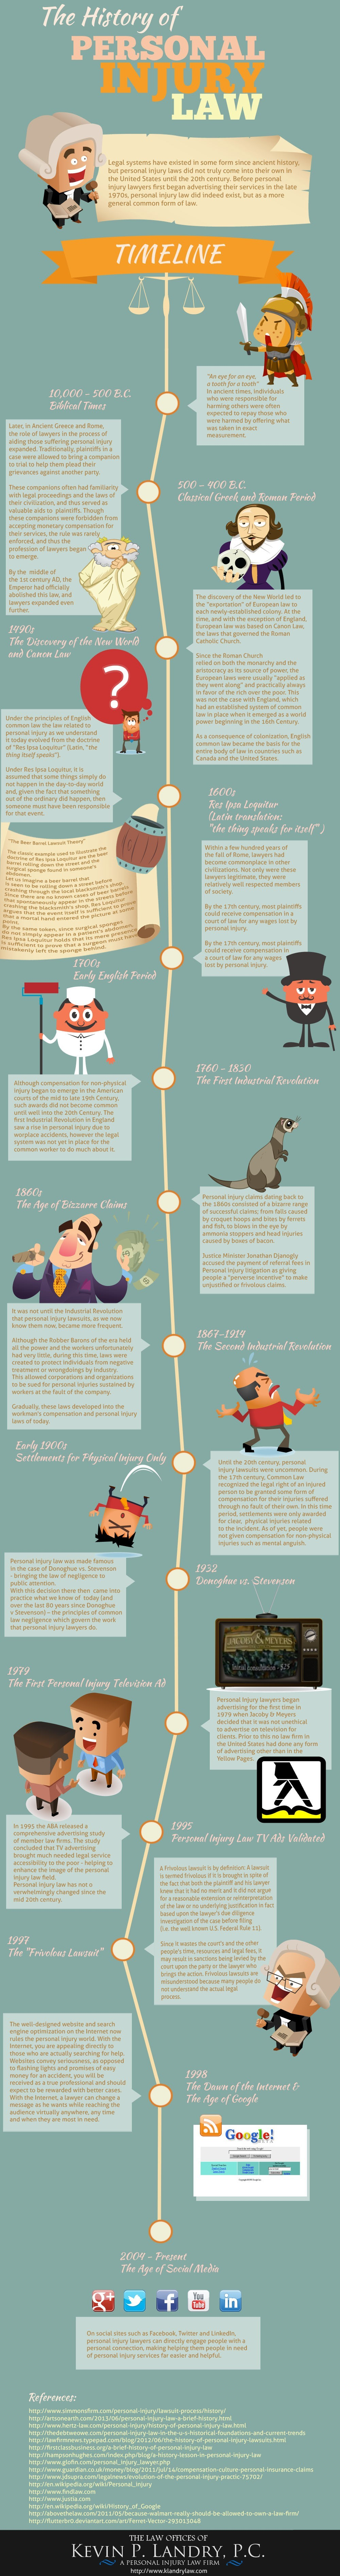 The History of Personal Injury Law [Infographic] The History of Personal Injury Law [Infographic] The History of Personal Injury Law new klandry infographics